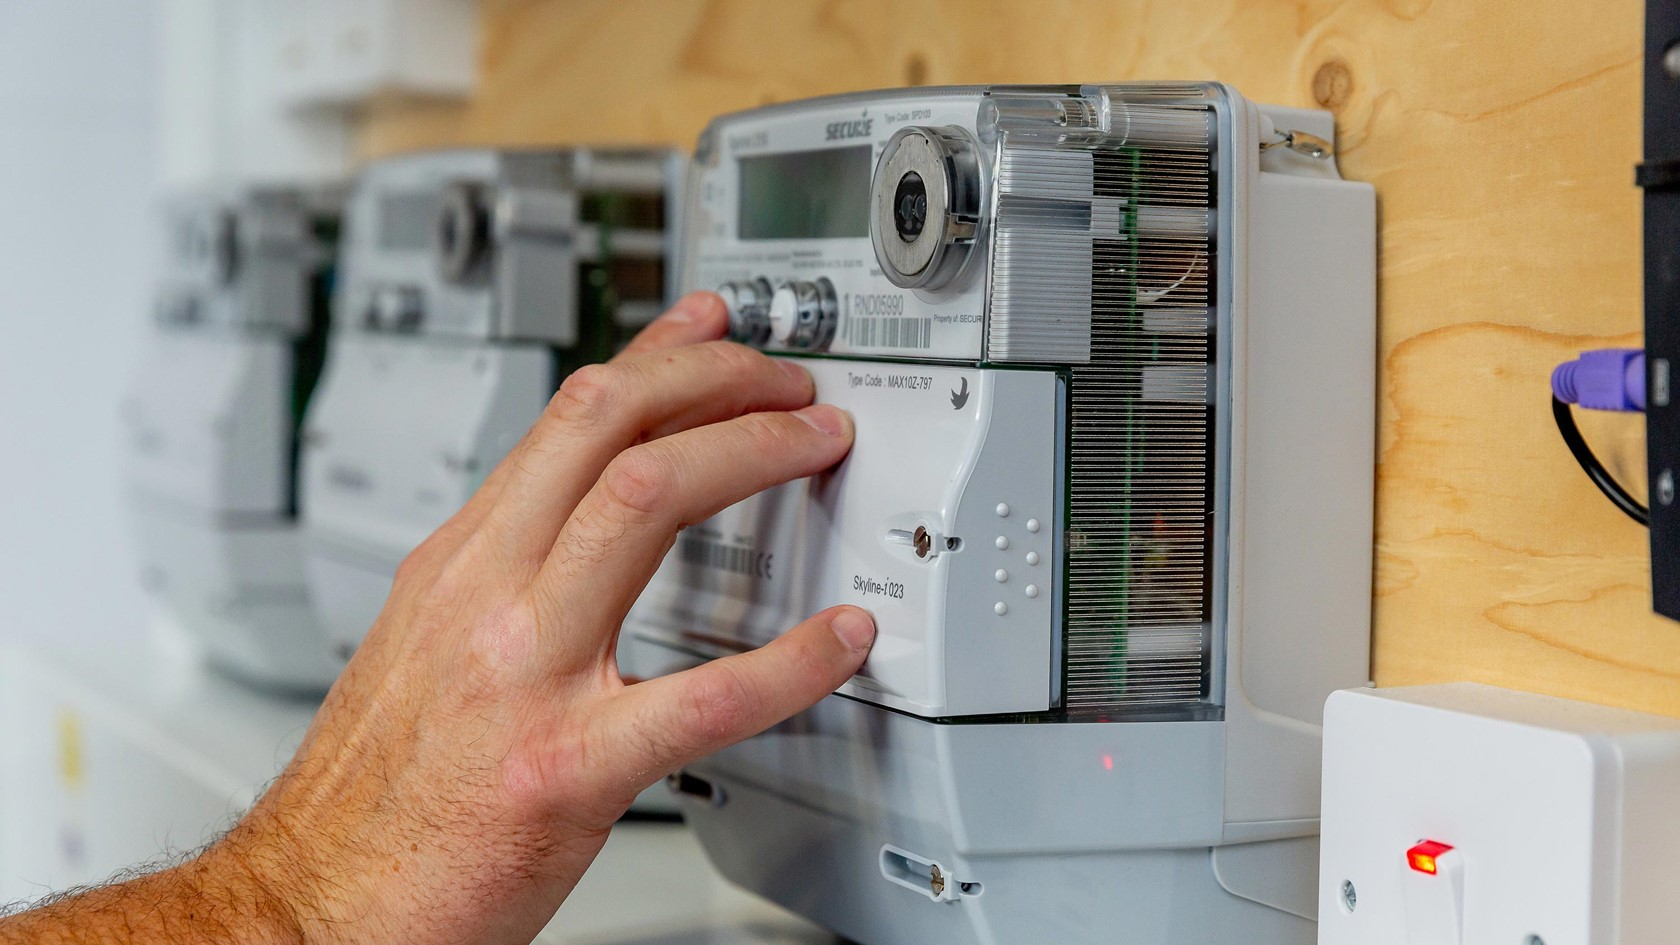 smart-meter-pic-re-sized-for-web.jpg